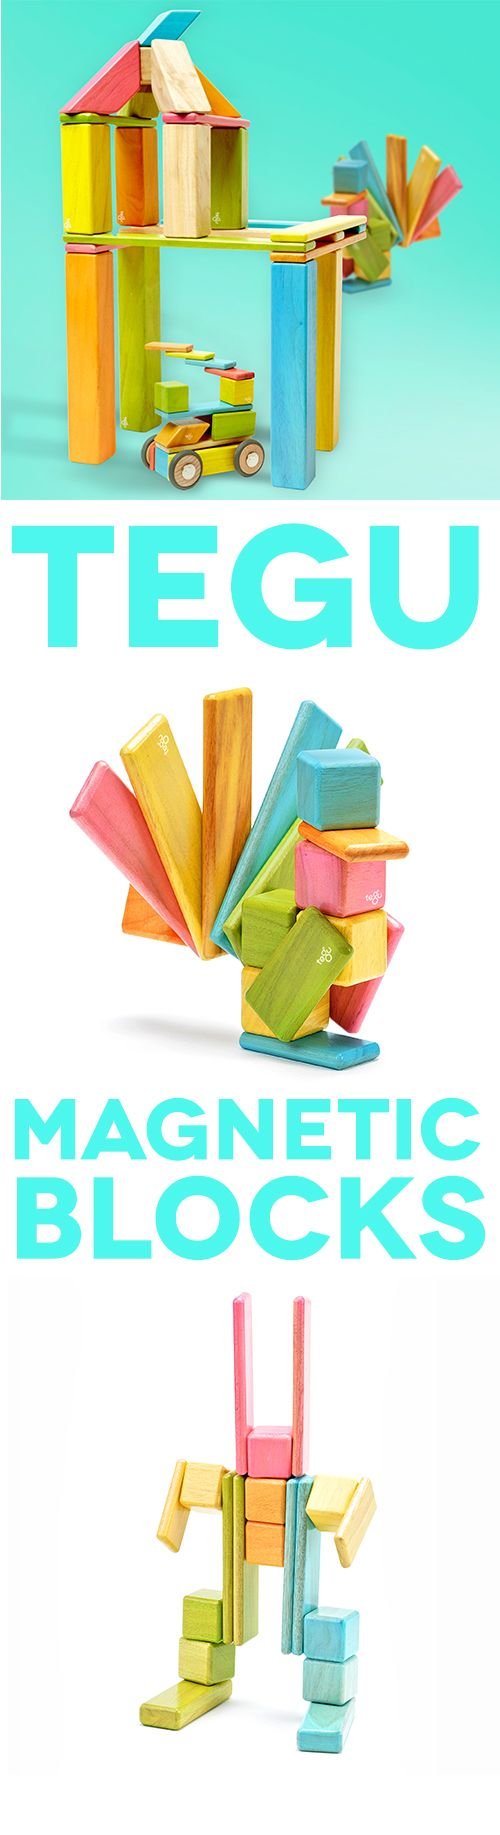 Beautifully crafted magnetized building blocks that defy gravity